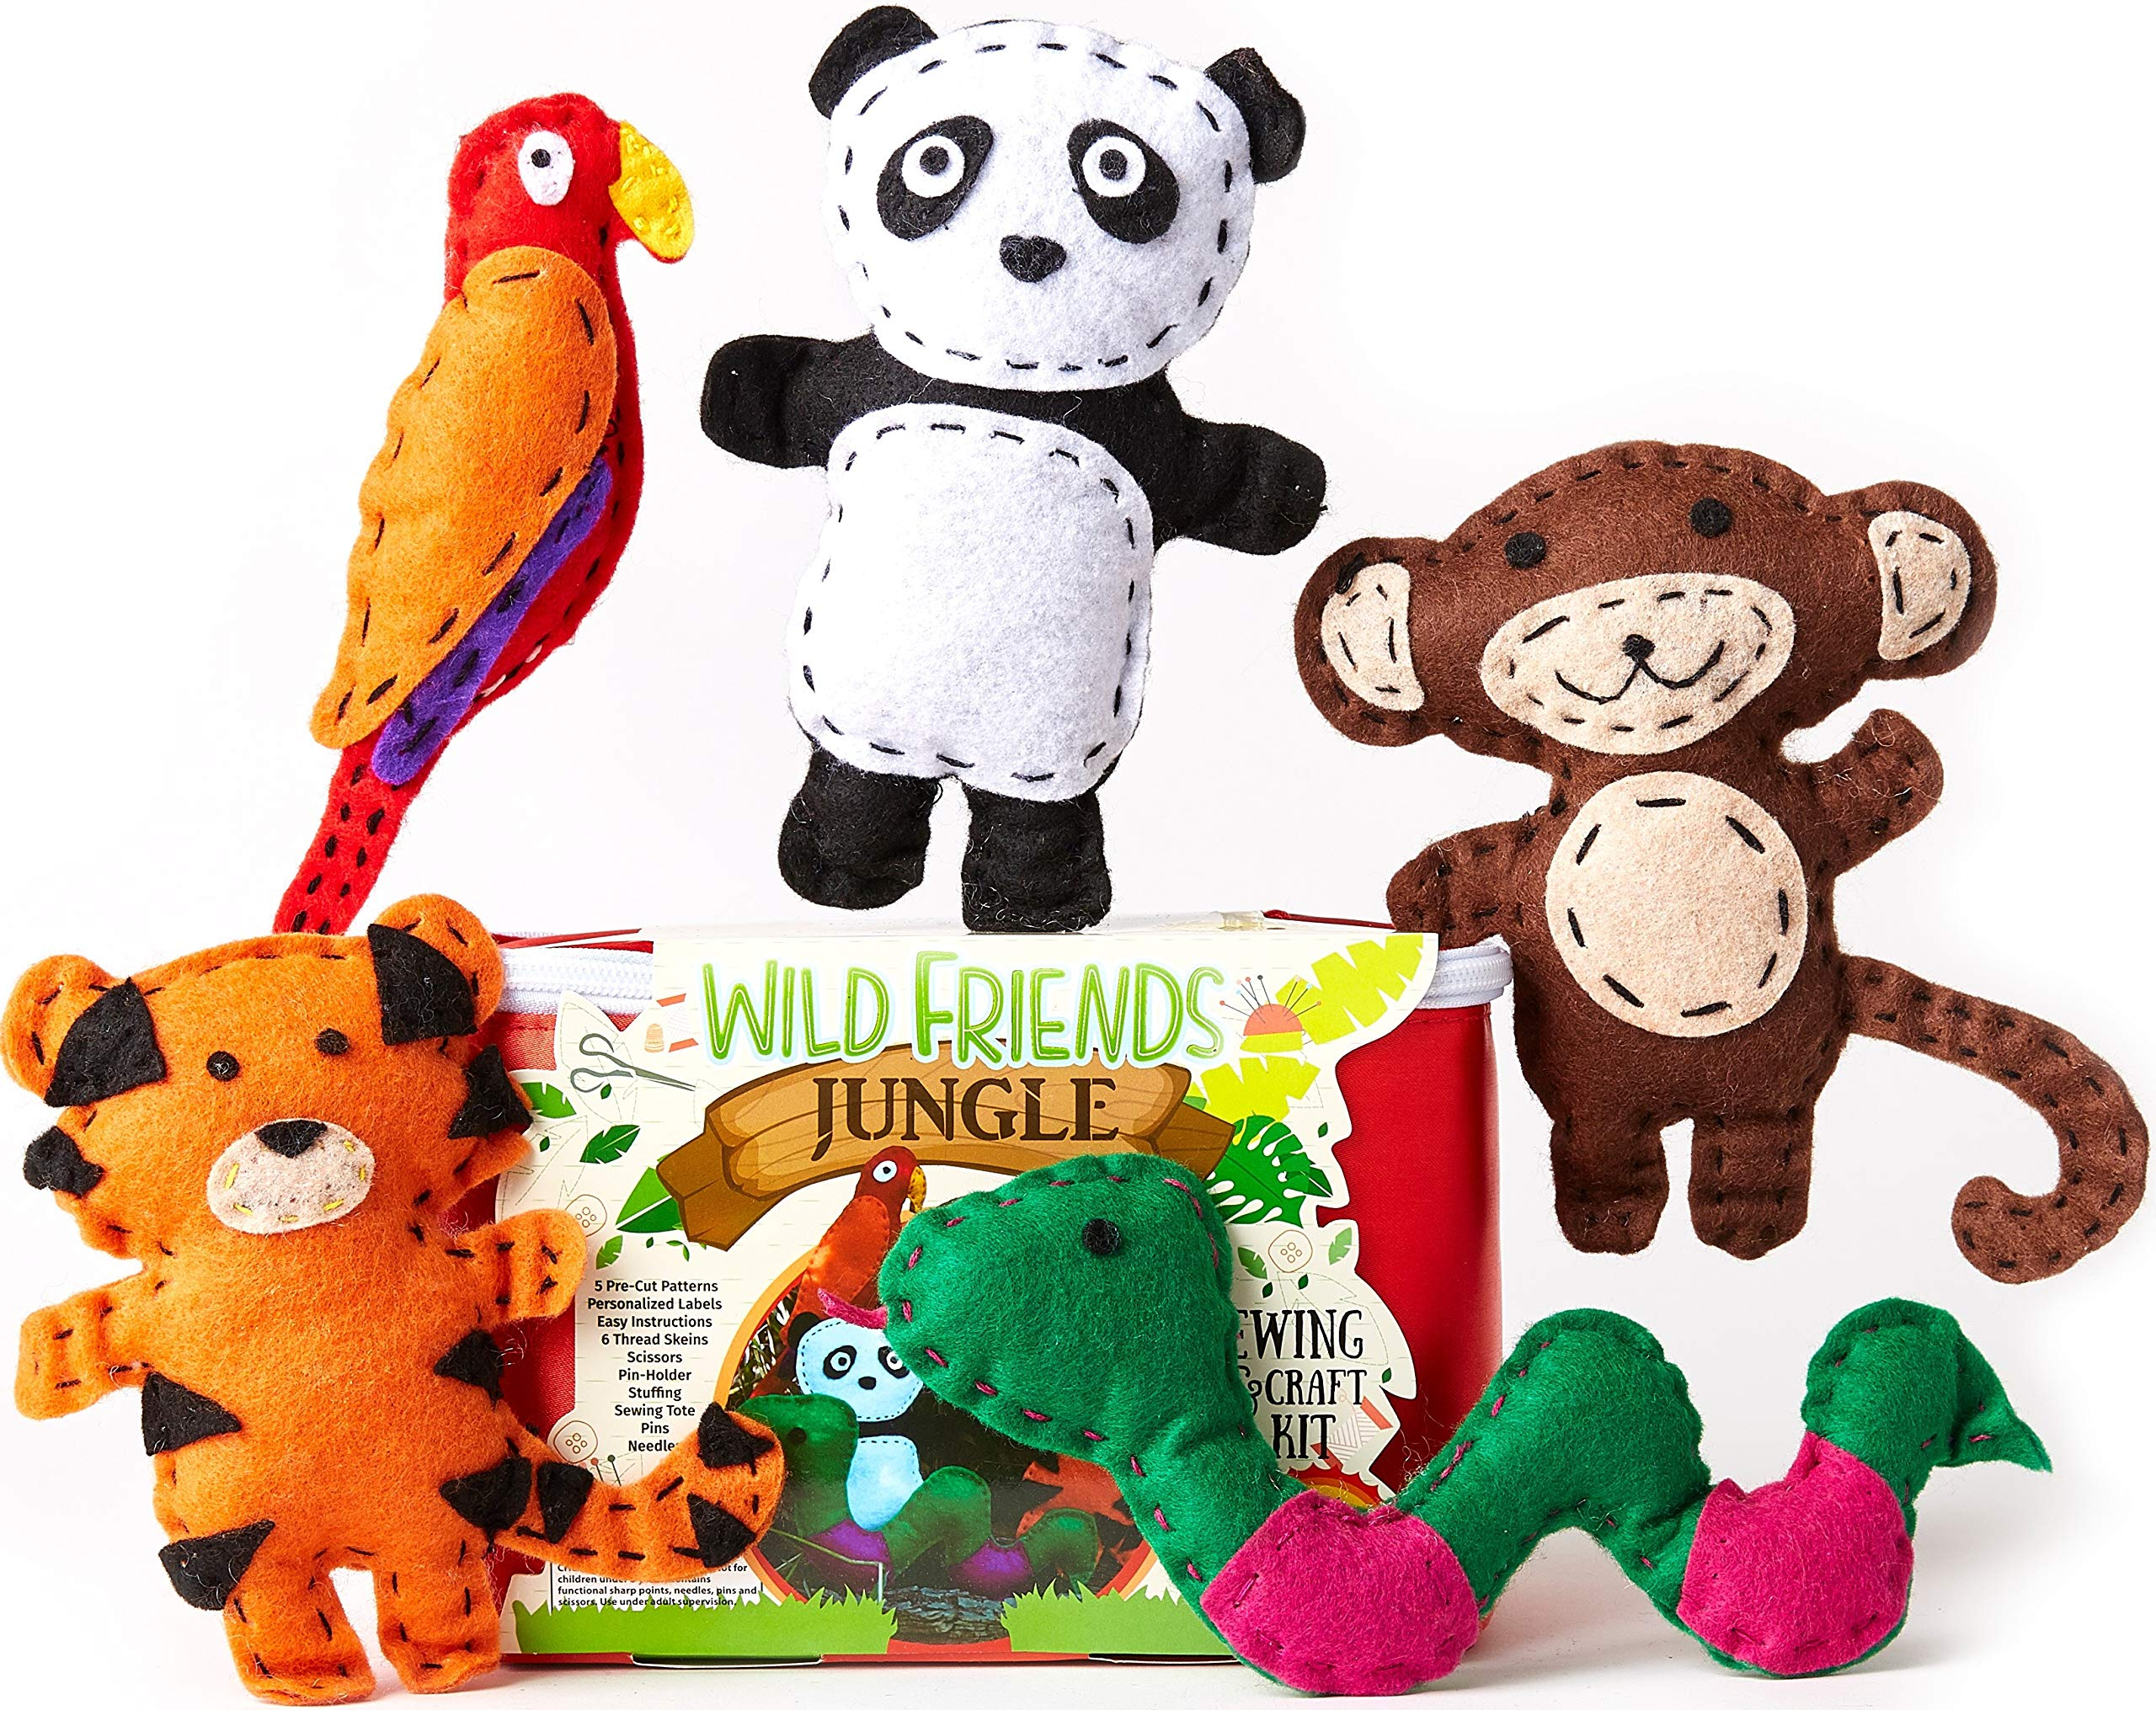 Four Seasons Crafting Kids Sewing Kit and Animal Crafts - Fun DIY Kid Craft and Sew Kits for Girls and Boys 120 Piece Set by Four Seasons Crafting